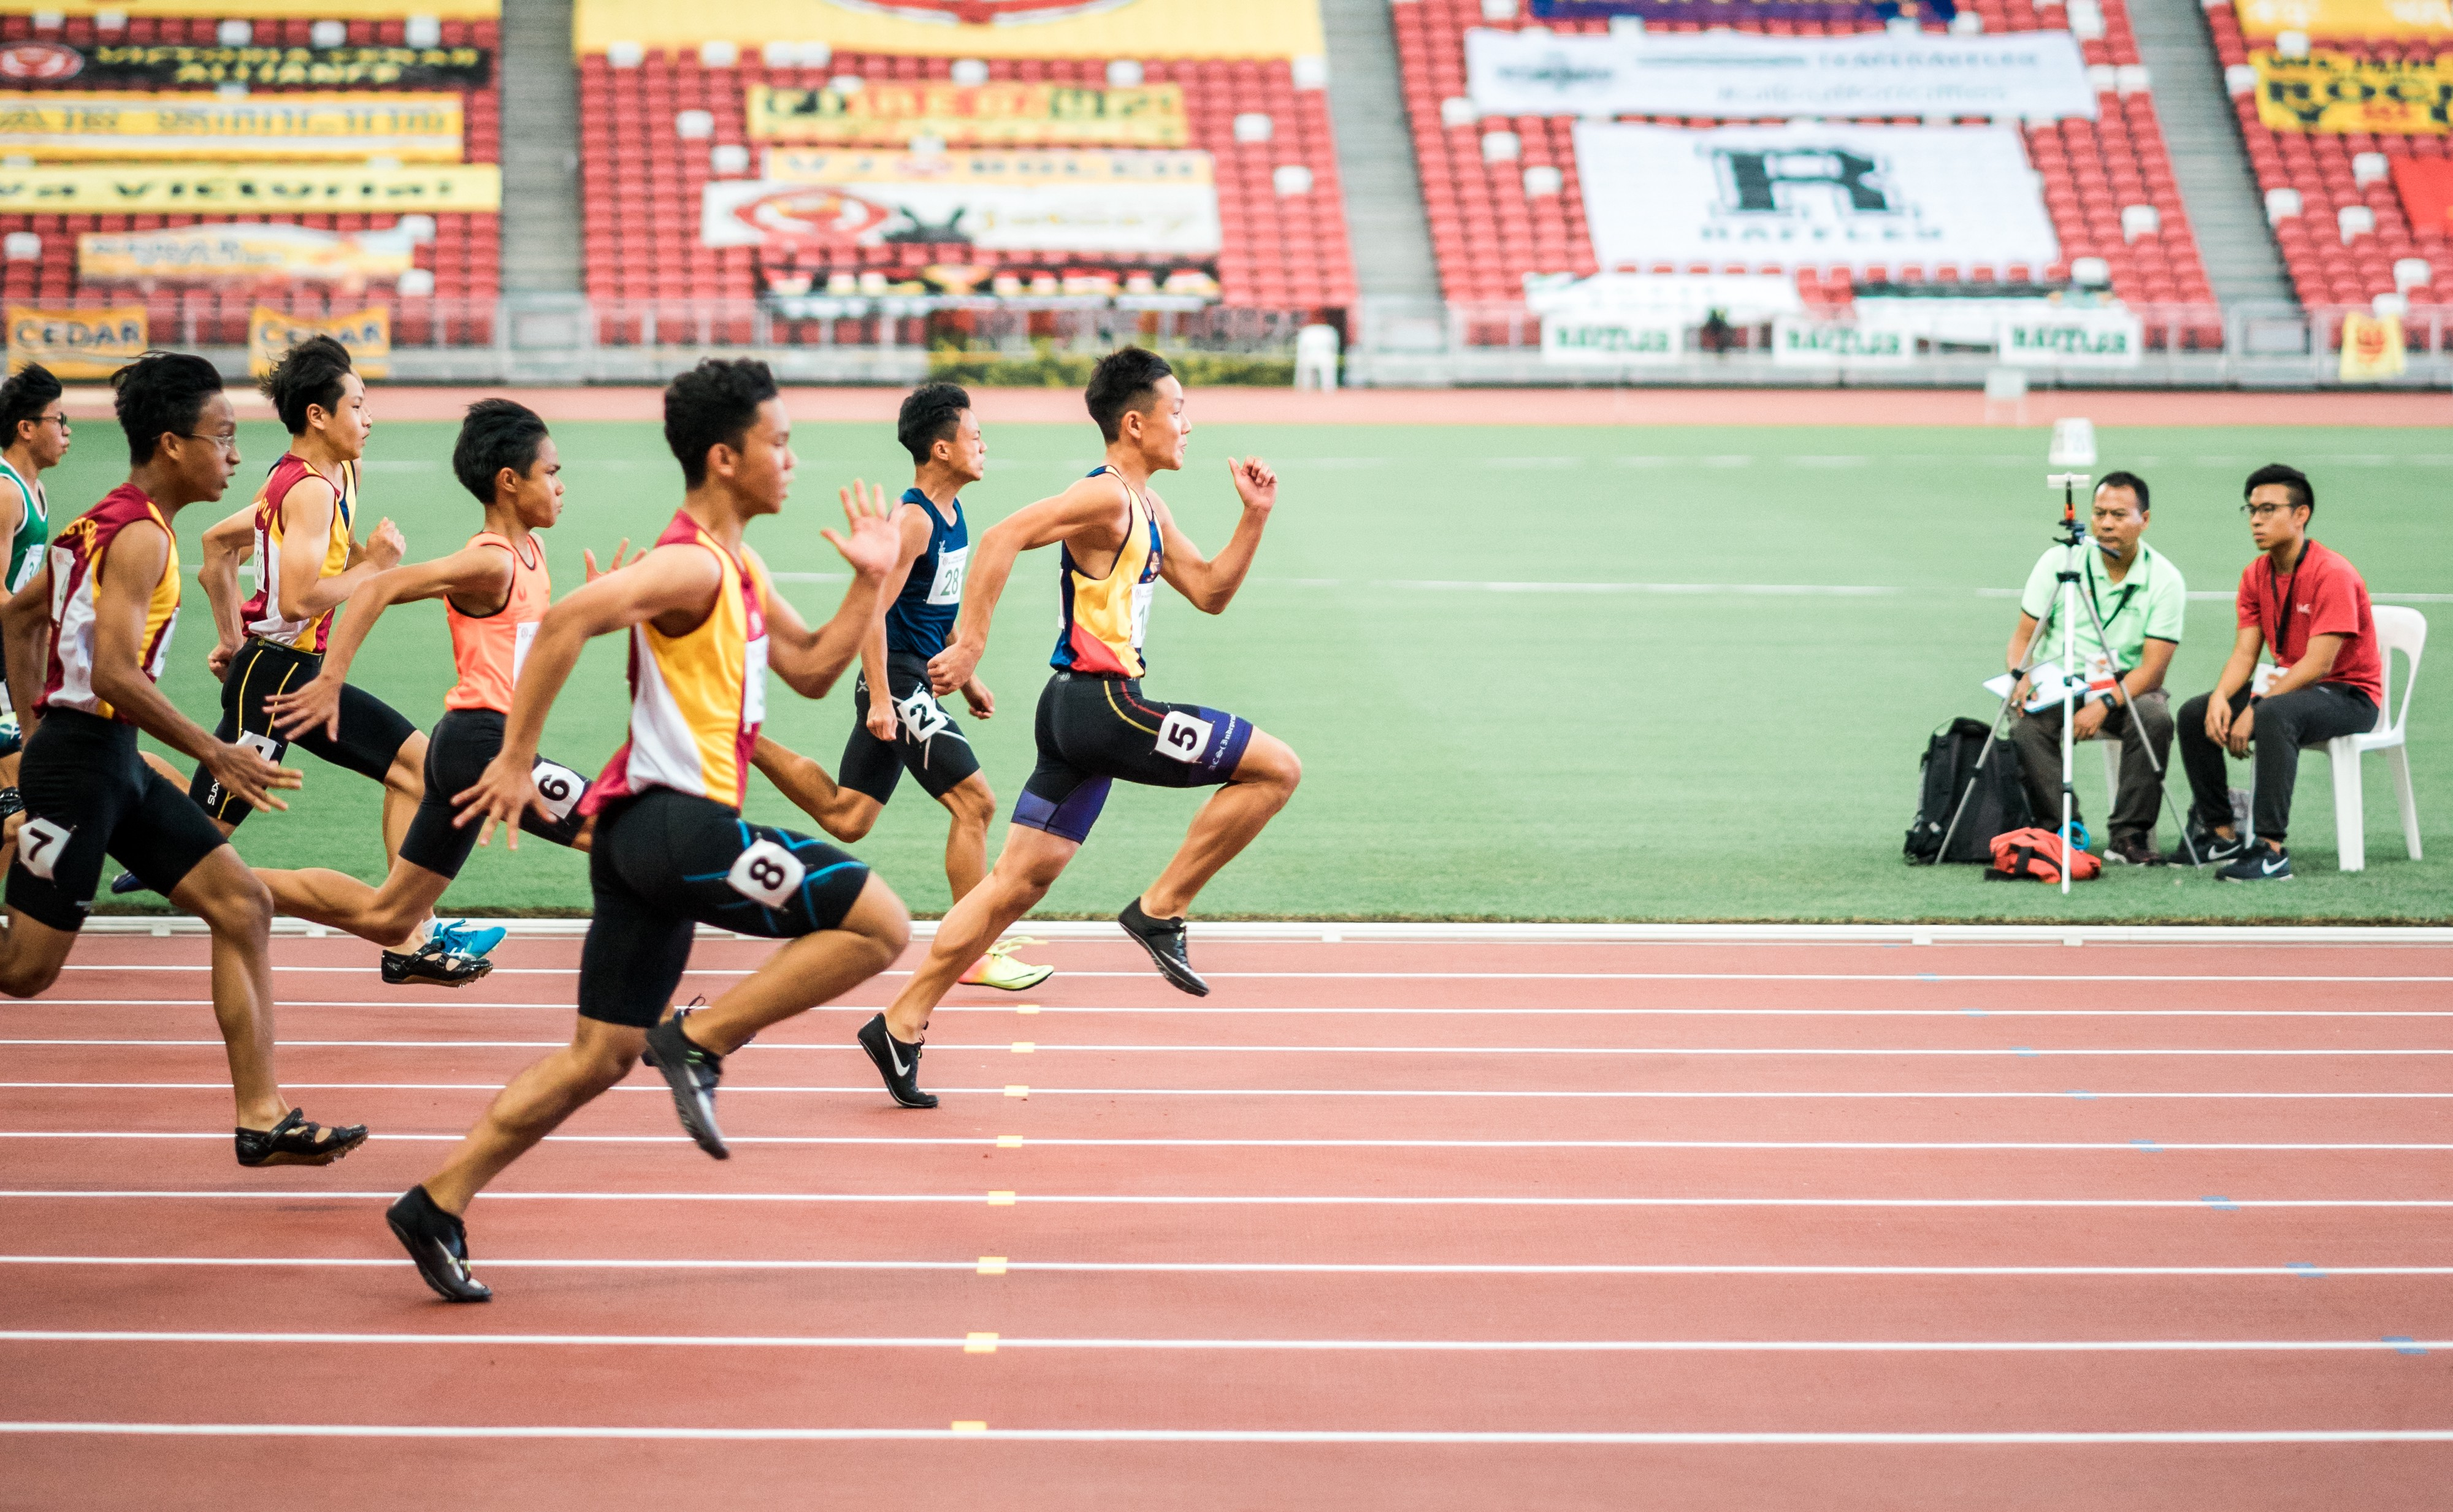 """group of men running in track field"" by Jonathan Chng on Unsplash"